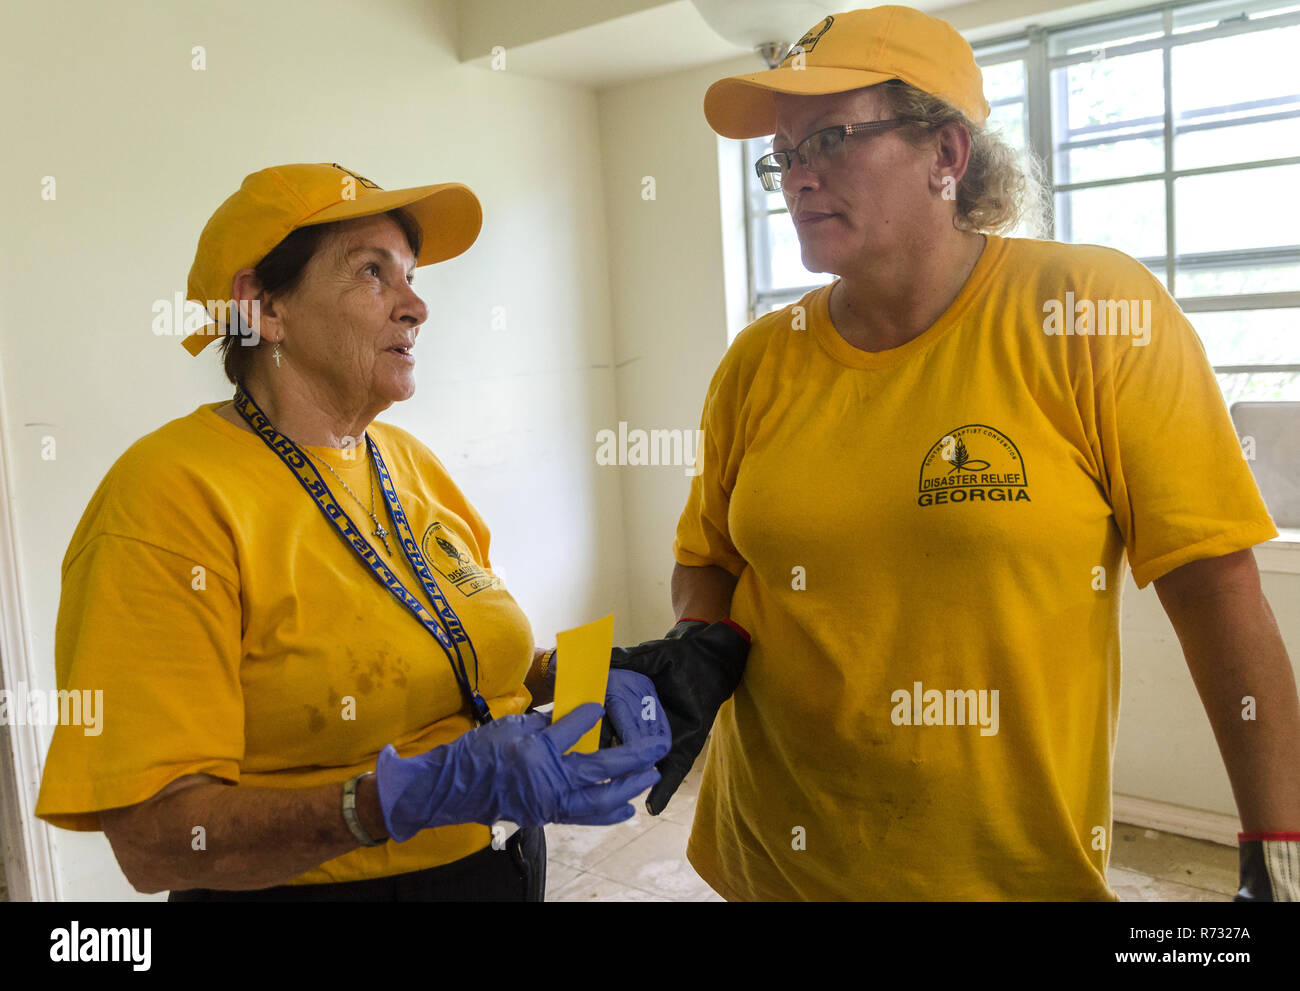 Southern Baptist Disaster Relief volunteers talk as they help clean out a flood victim's house after a flood in Denham Springs, Louisiana. - Stock Image